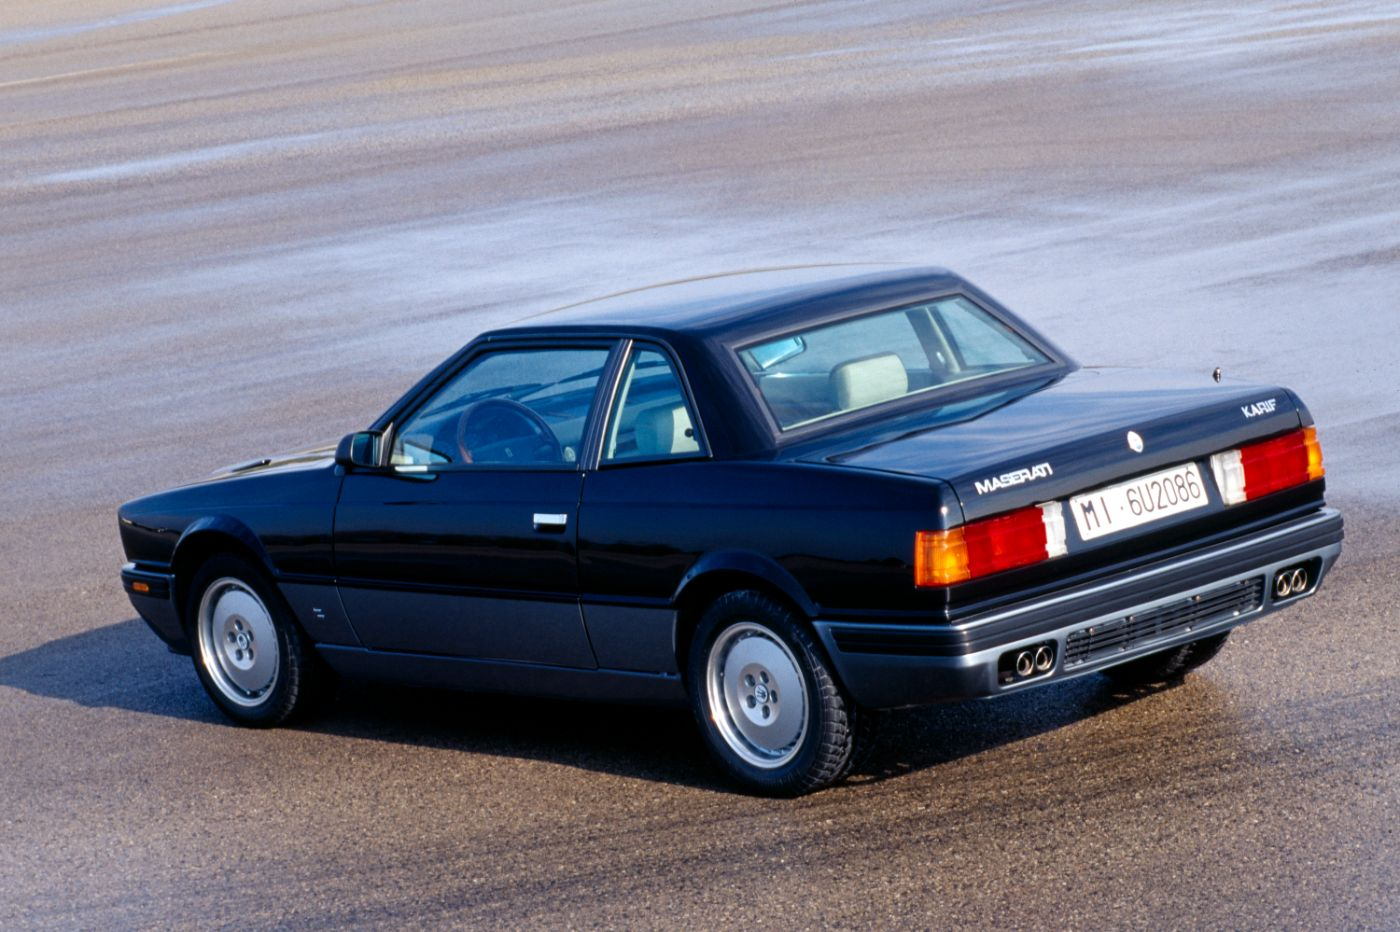 1988 Maserati Karif - Biturbo - exterior of the classic car model